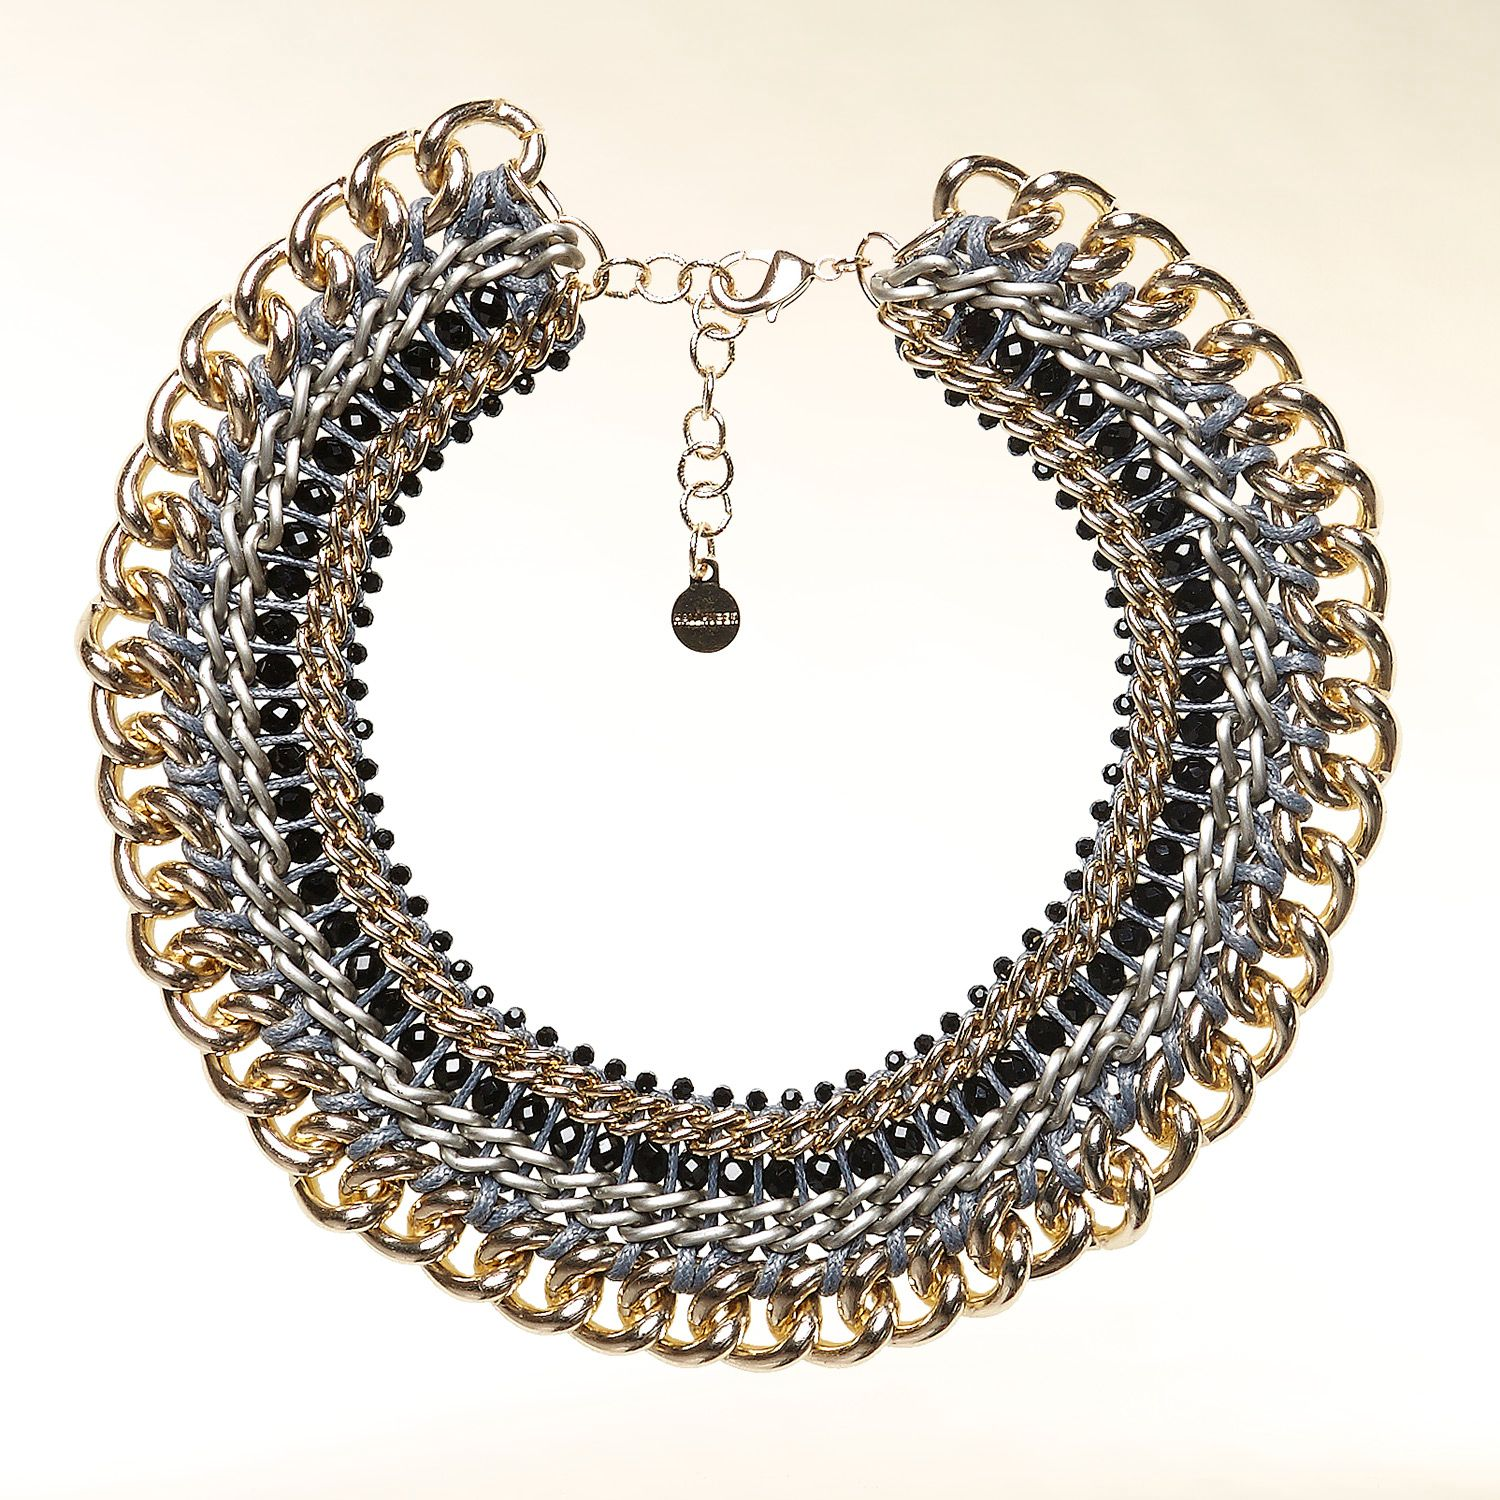 Chain and gemstone collar necklace